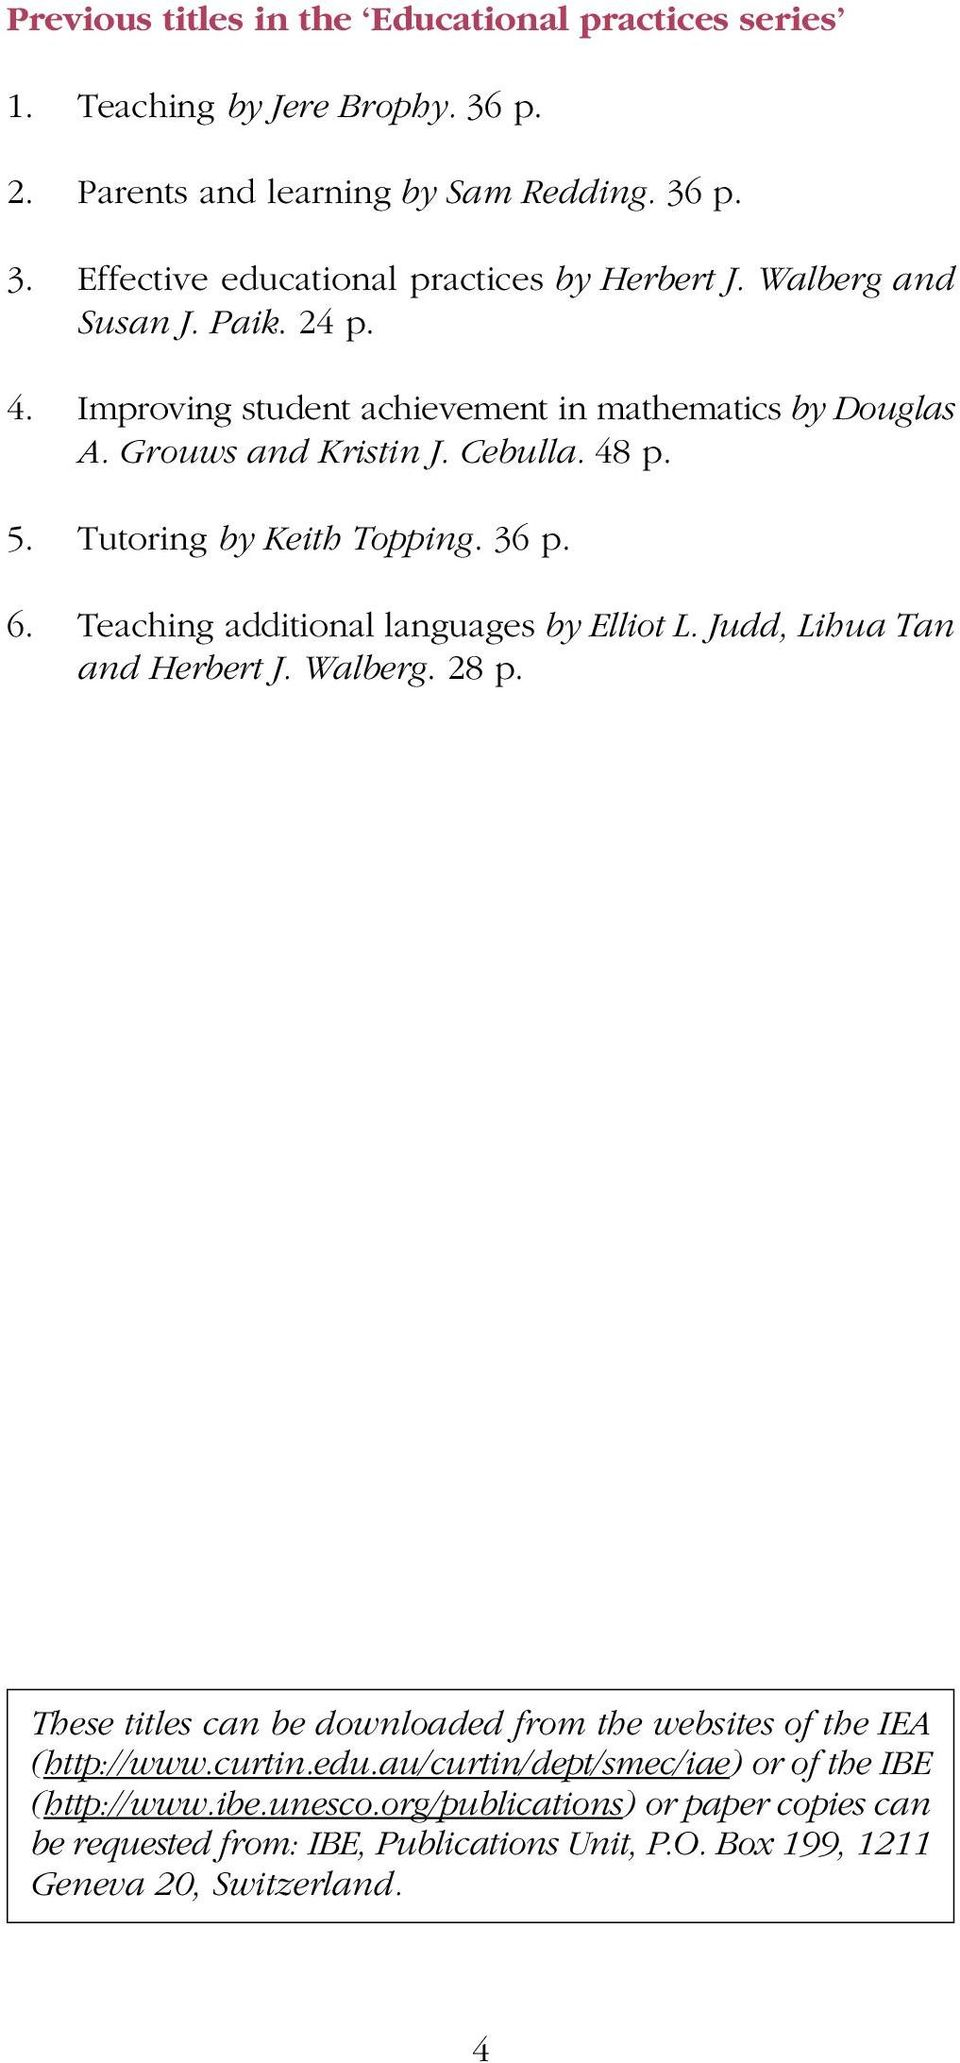 Teaching additional languages by Elliot L. Judd, Lihua Tan and Herbert J. Walberg. 28 p. These titles can be downloaded from the websites of the IEA (http://www.curtin.edu.